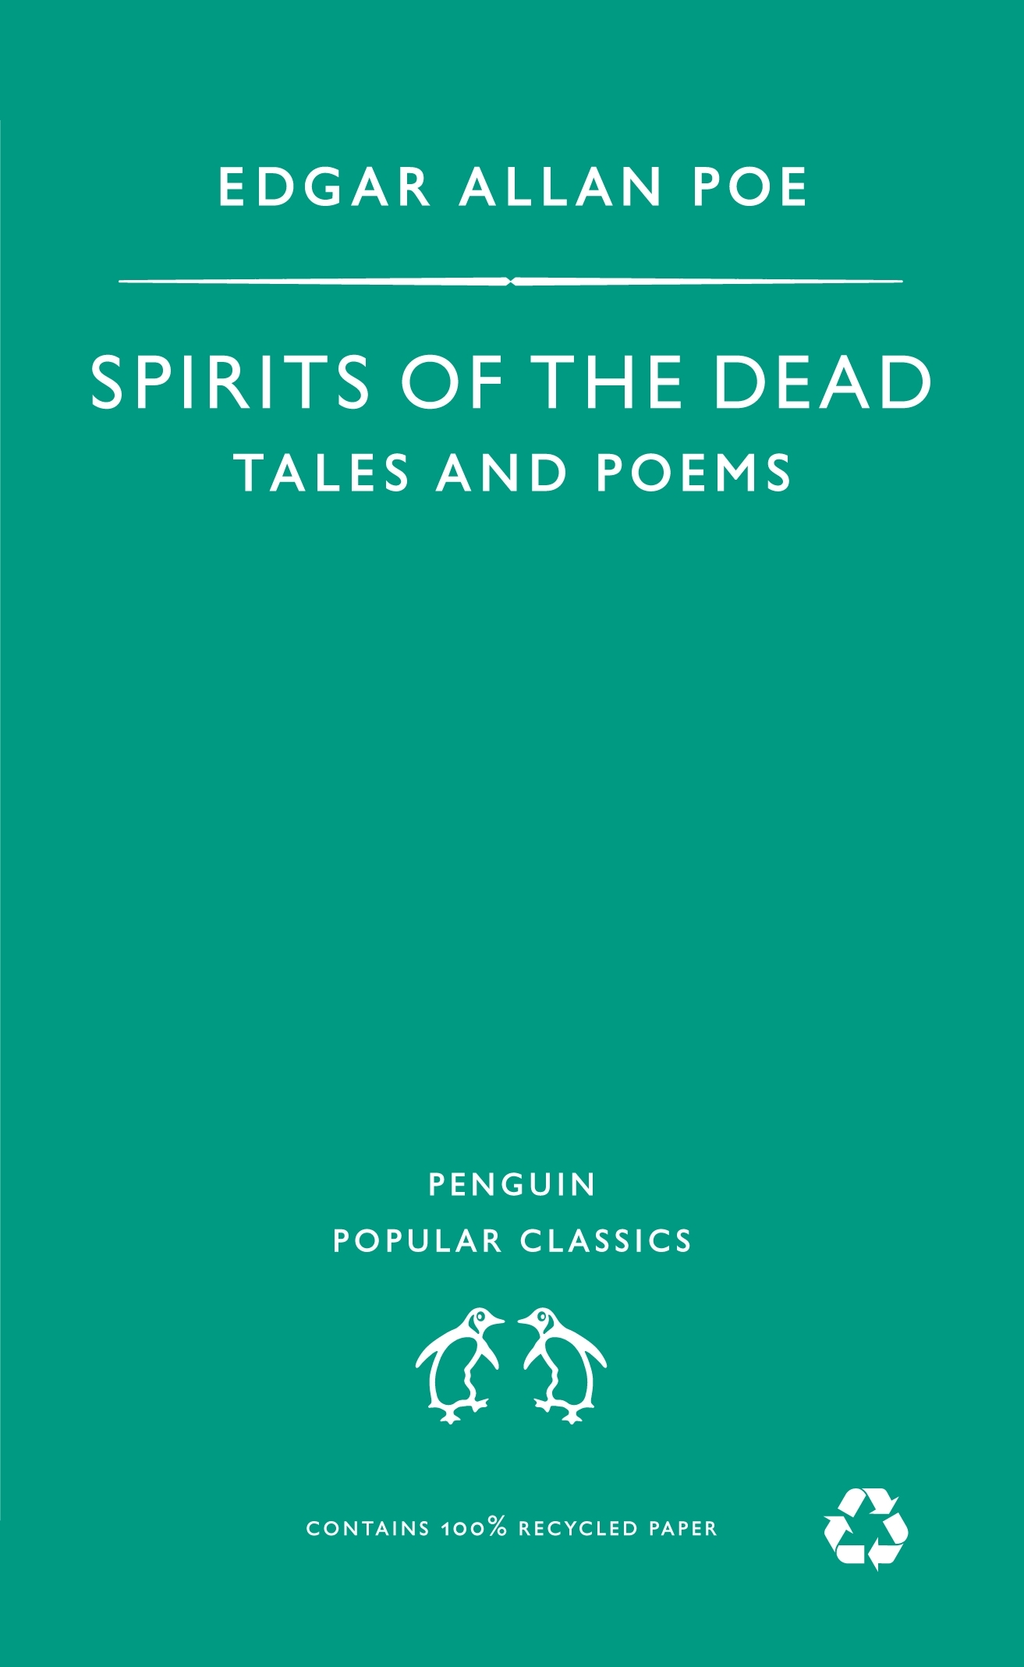 Spirits of the Dead Tales and Poems